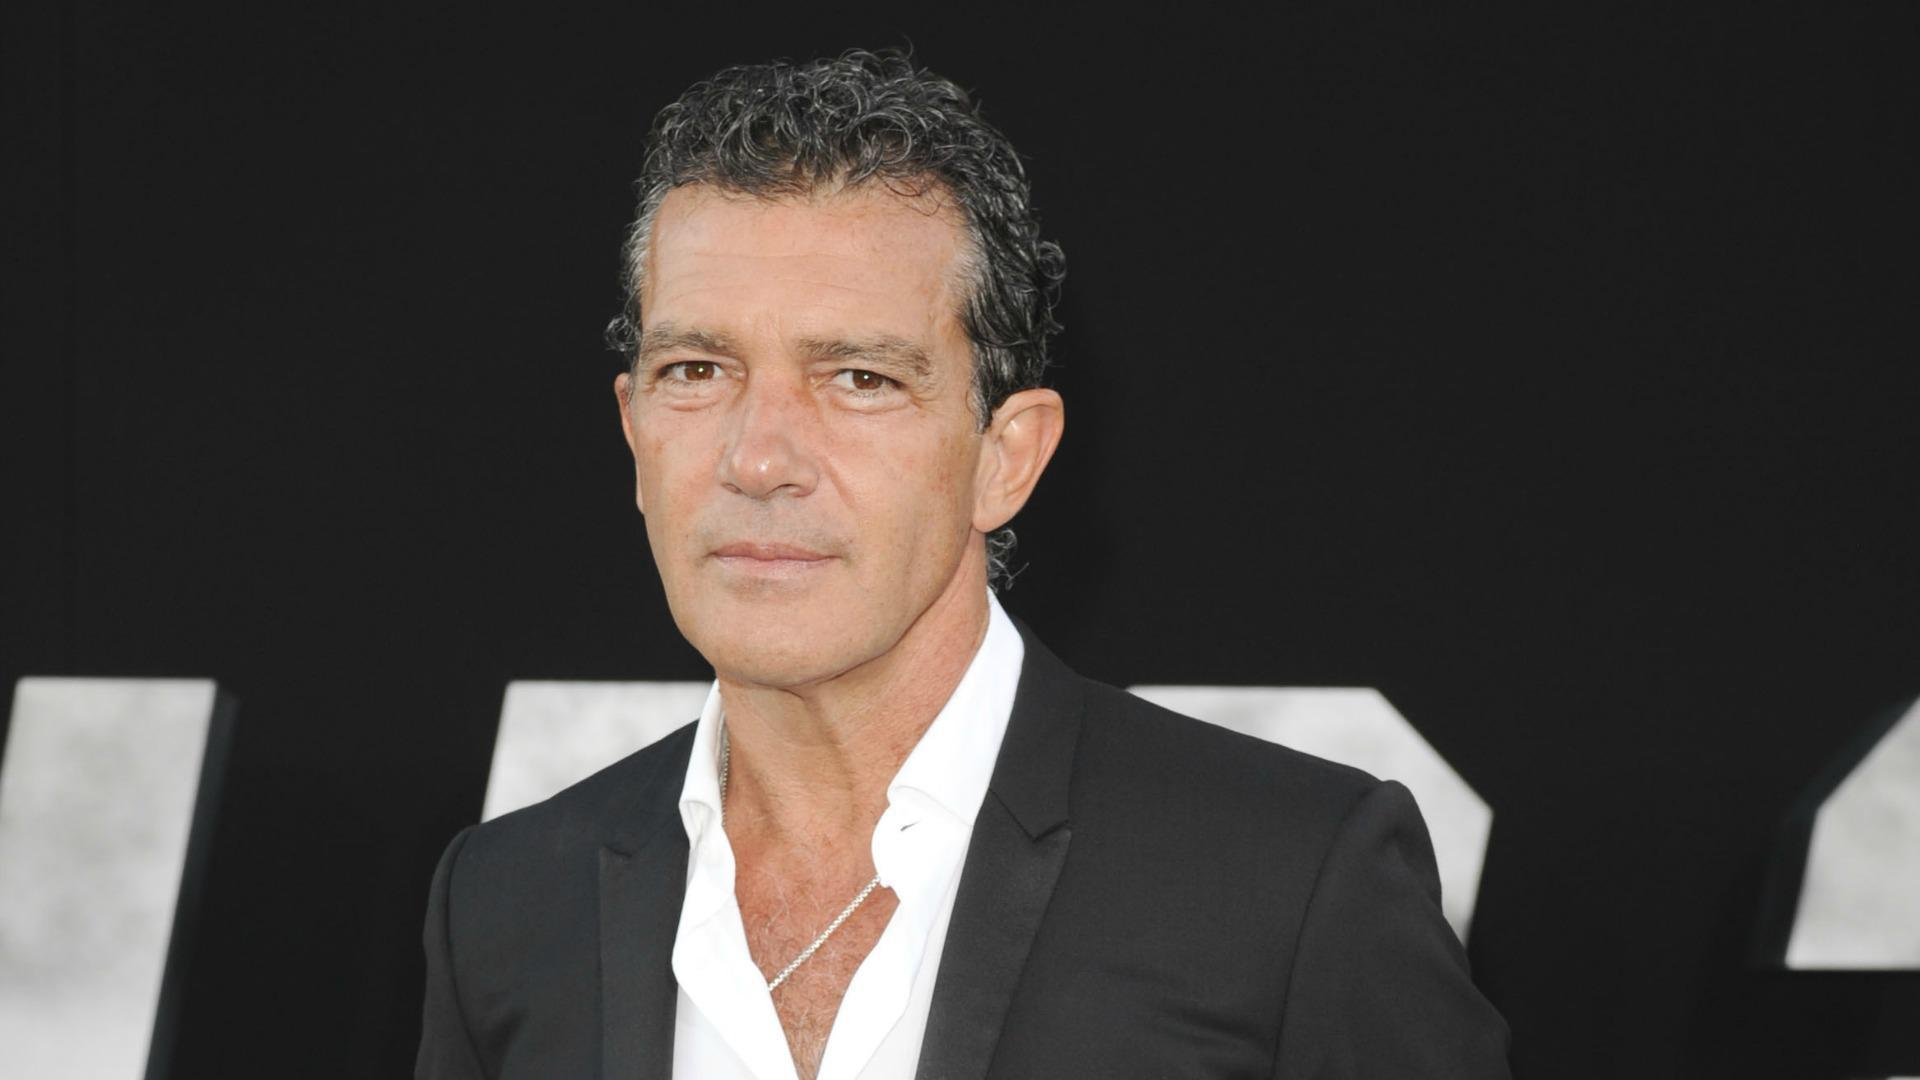 a biography of the life and times of antonio banderas She fell in love and married actor antonio banderas on may 14, 1996 she has a daughter from the marriage, stella del carmen banderas who was born on september 24, 1996 their divorce was finalized in december 2015.